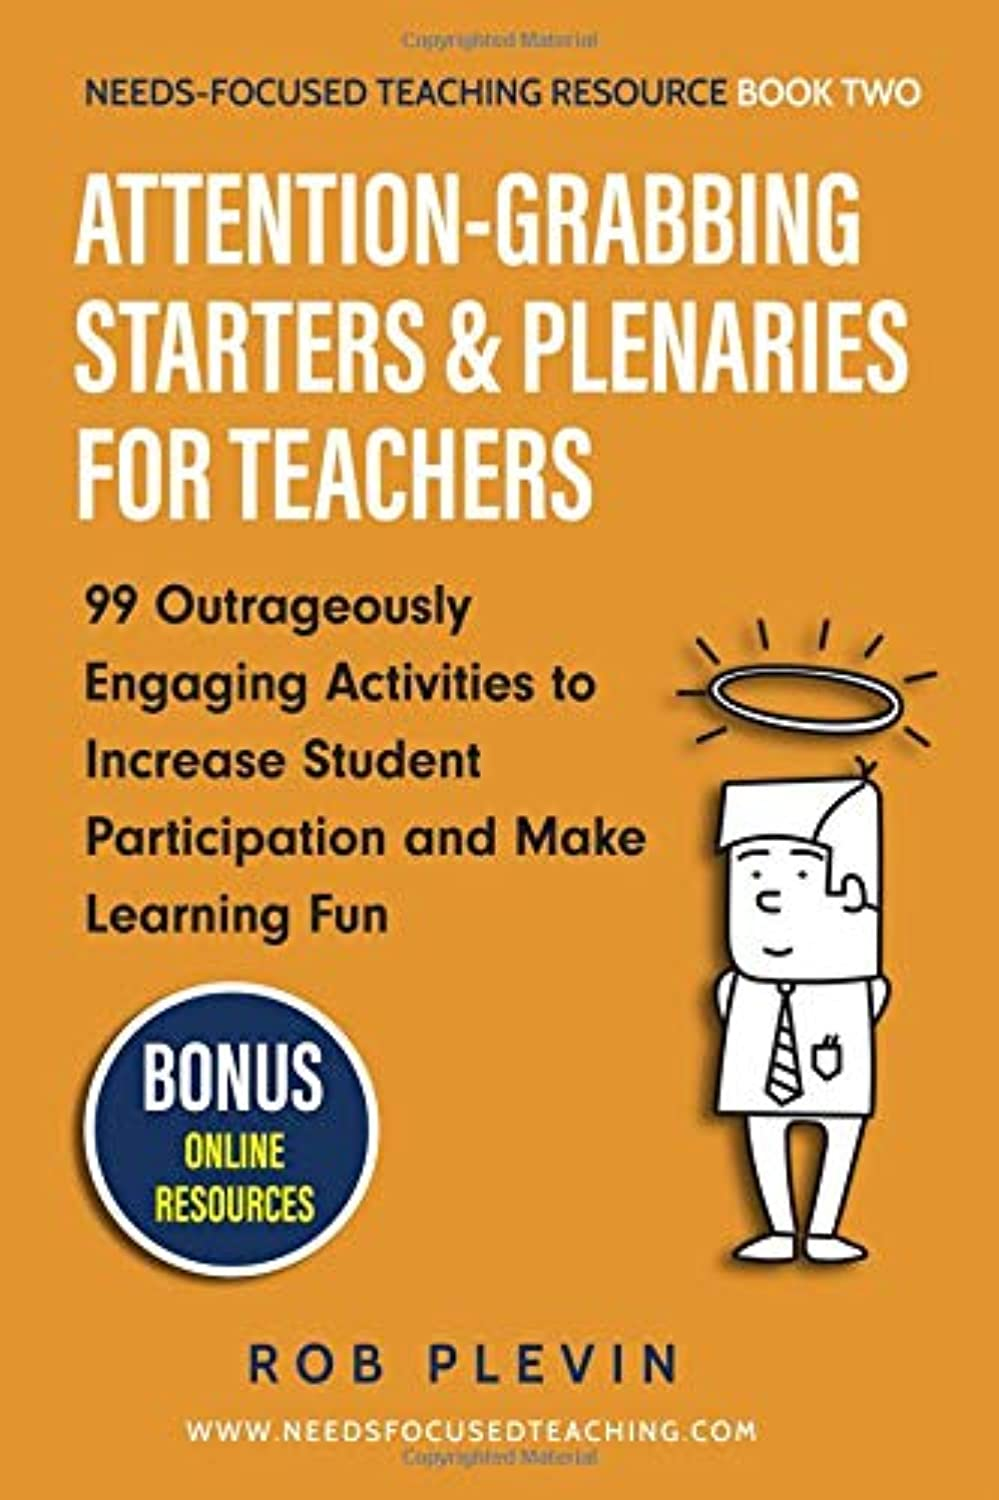 Attention-Grabbing Starters & Plenaries for Teachers: 99 Outrageously Engaging Activities to Increase Student Participation and Make Learning Fun (Needs-Focused Teaching Resource)